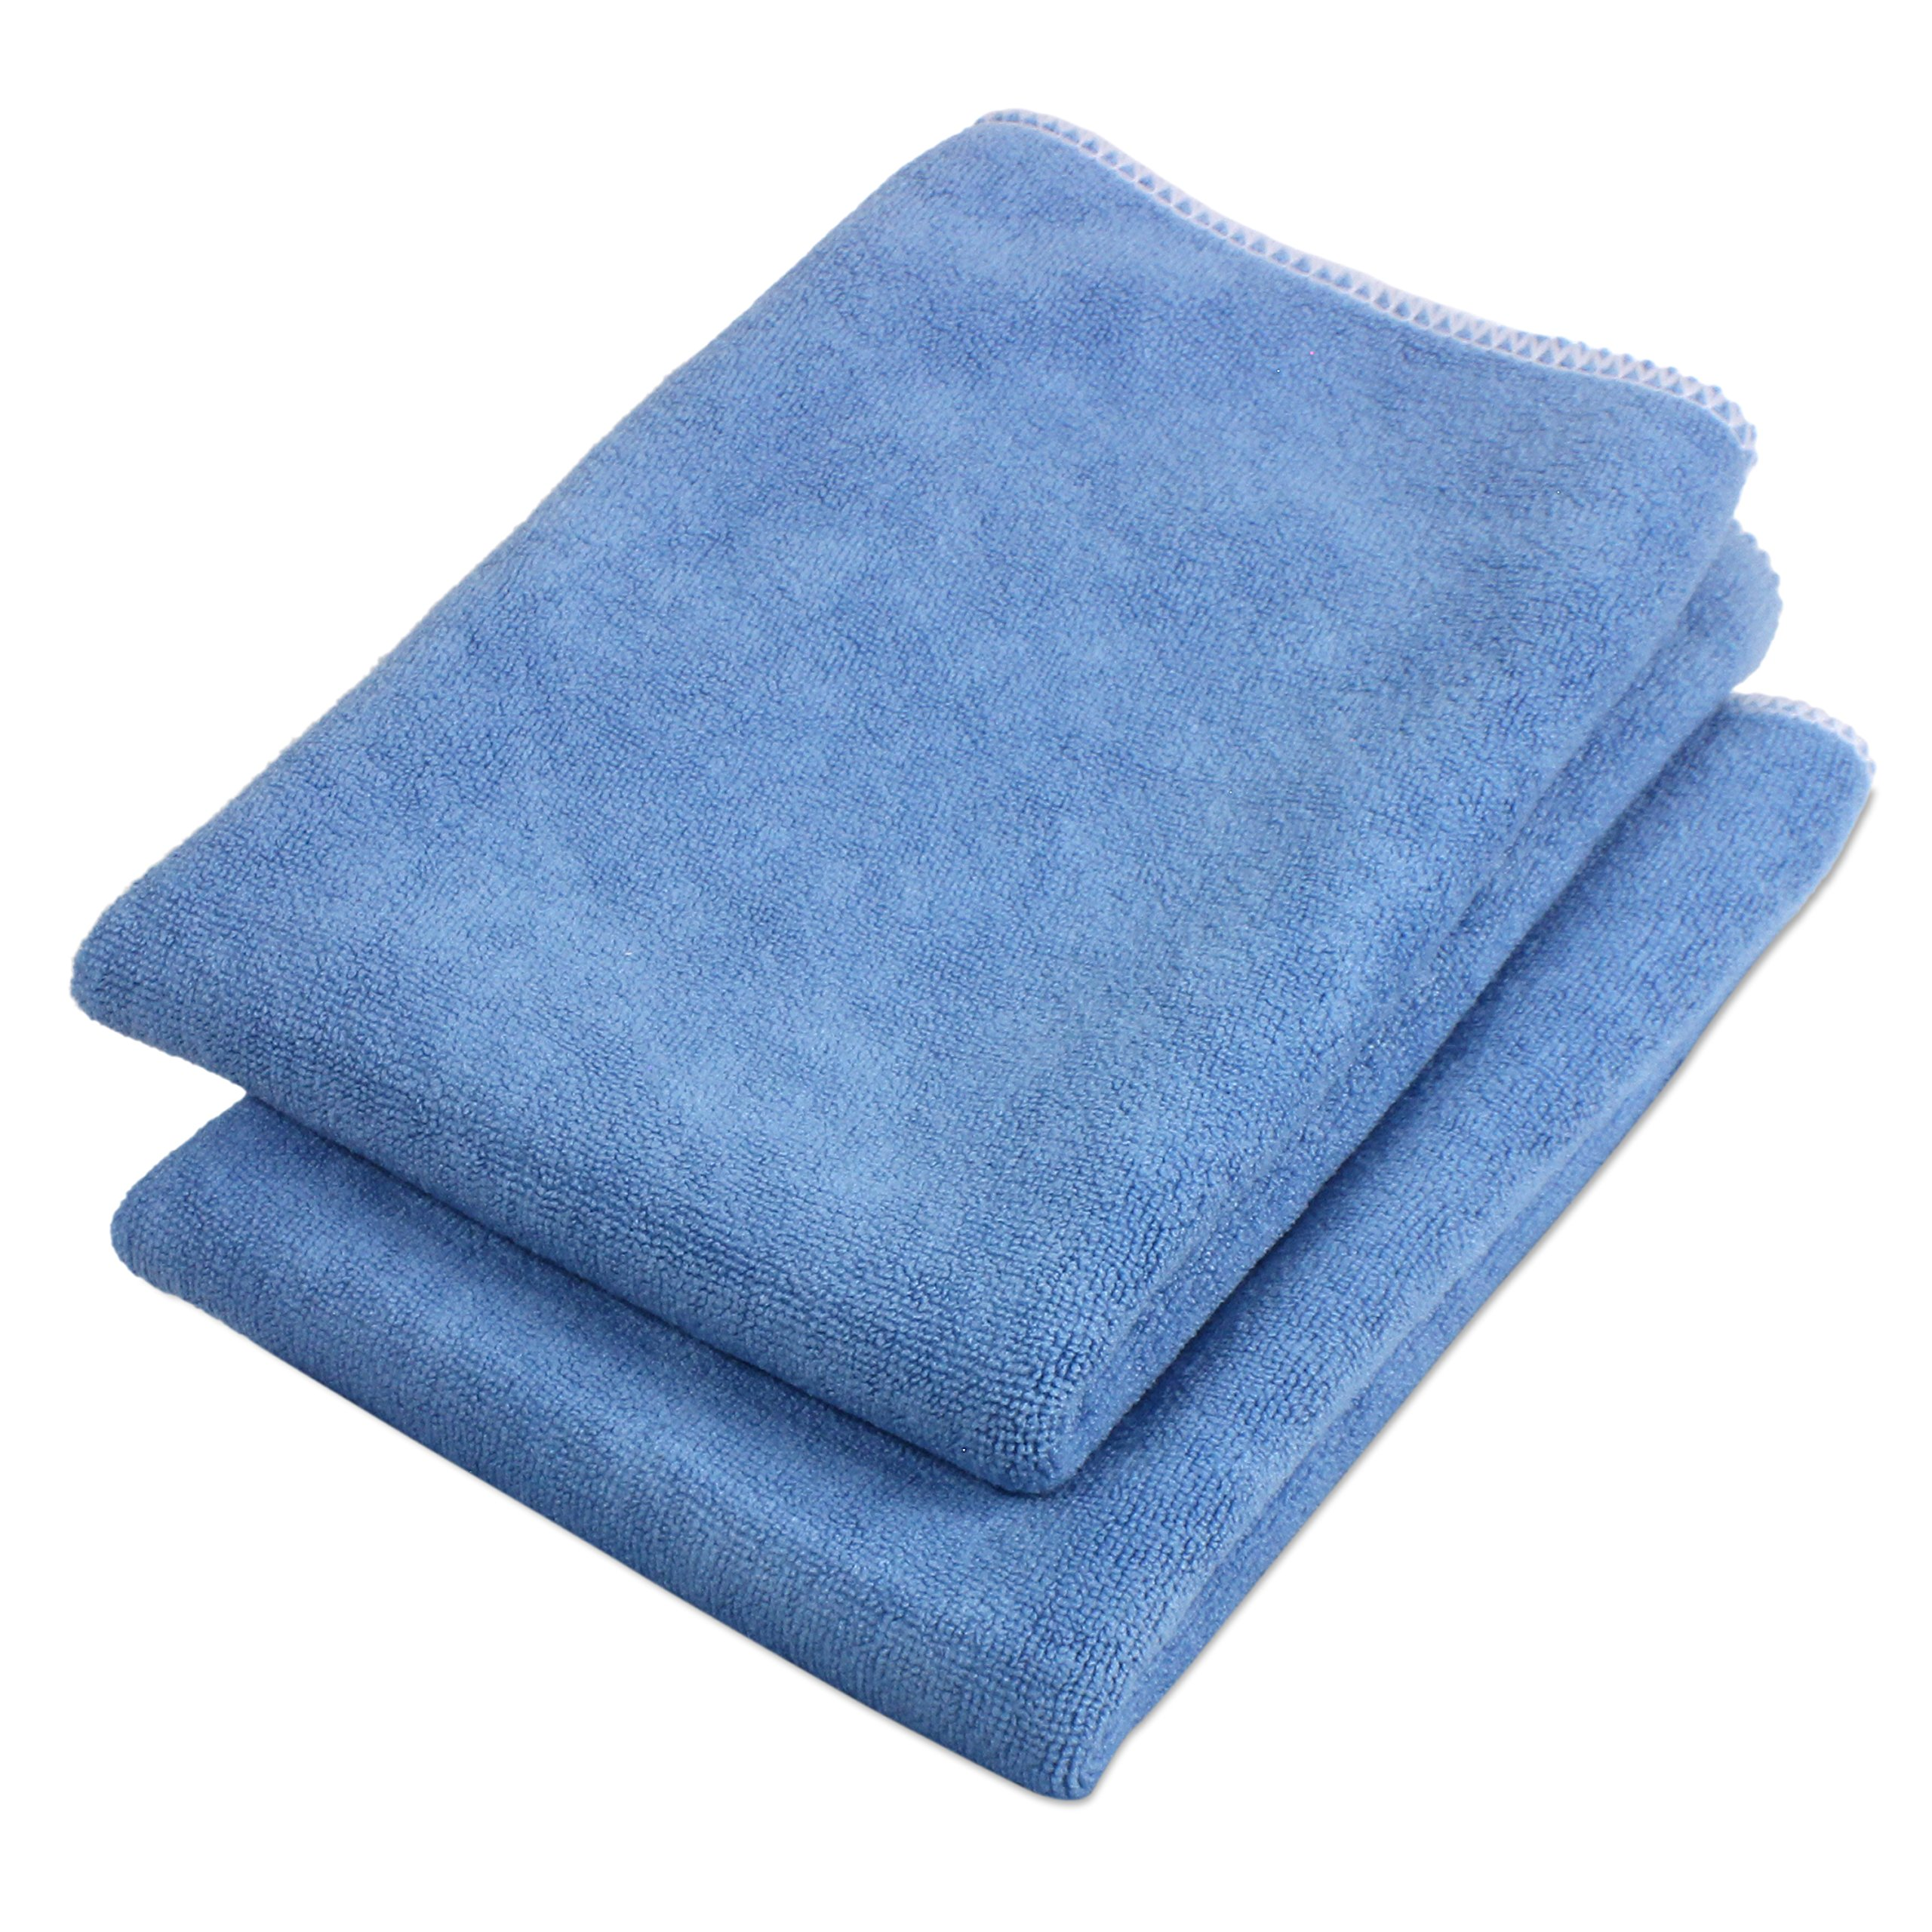 Home Solutions Microfiber Cloth - Ultra Smooth Cleaning Cloth (2)